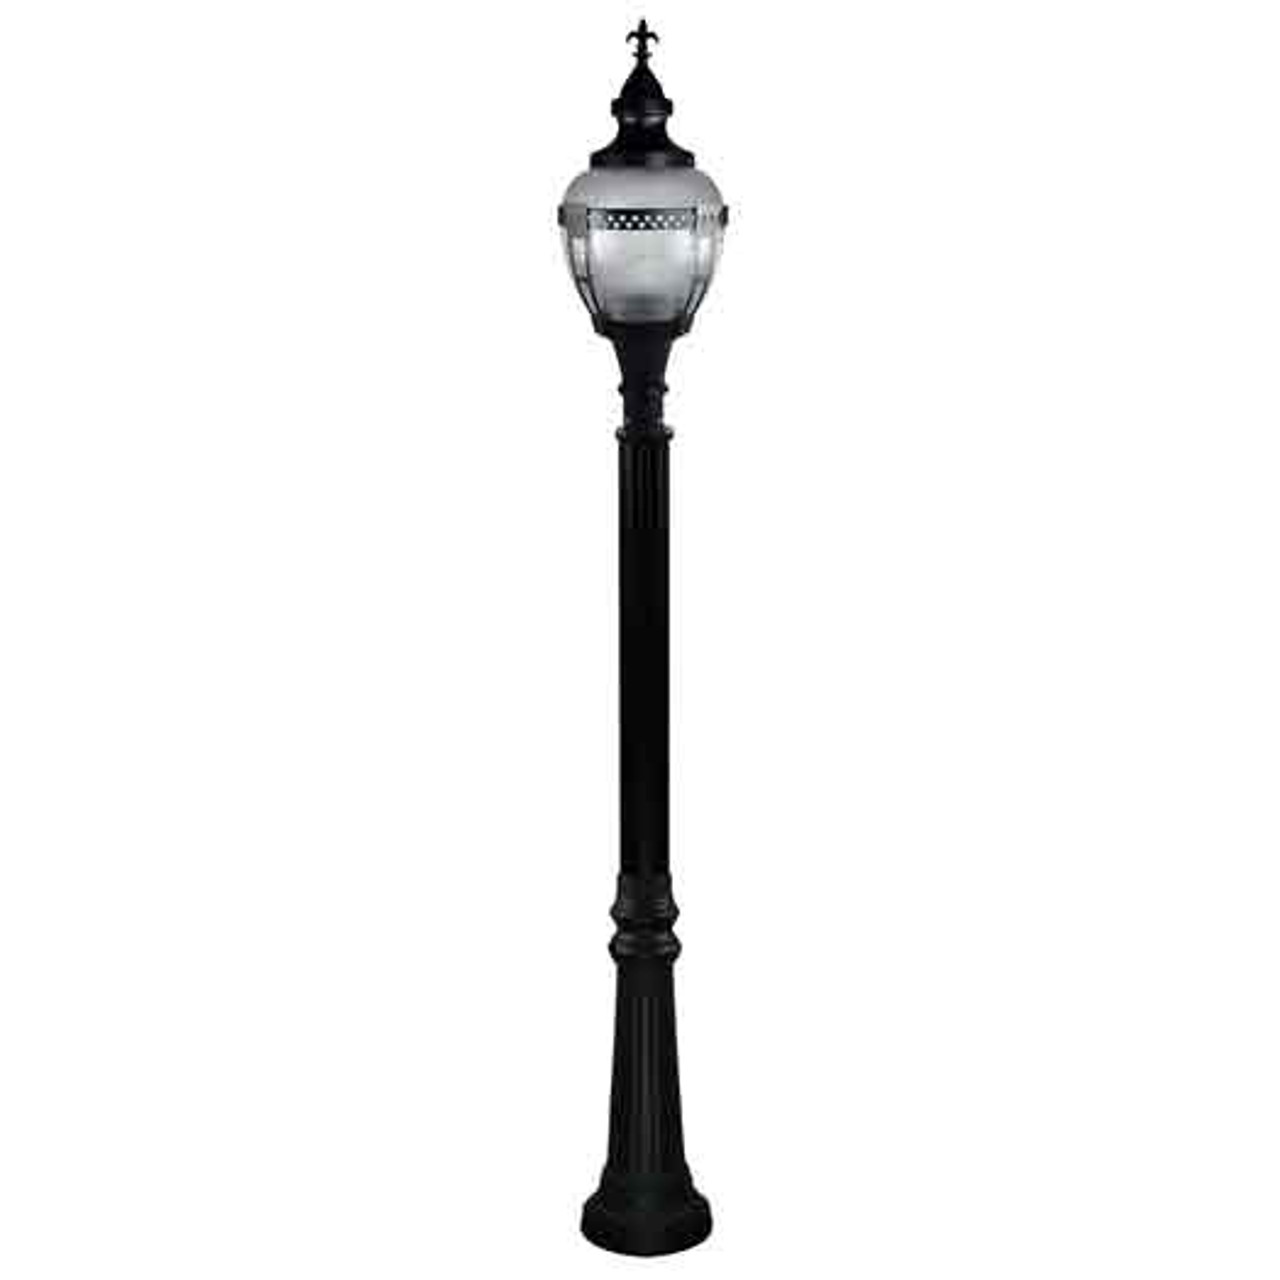 Bostonian Historic Premium Post Top Light on Pole